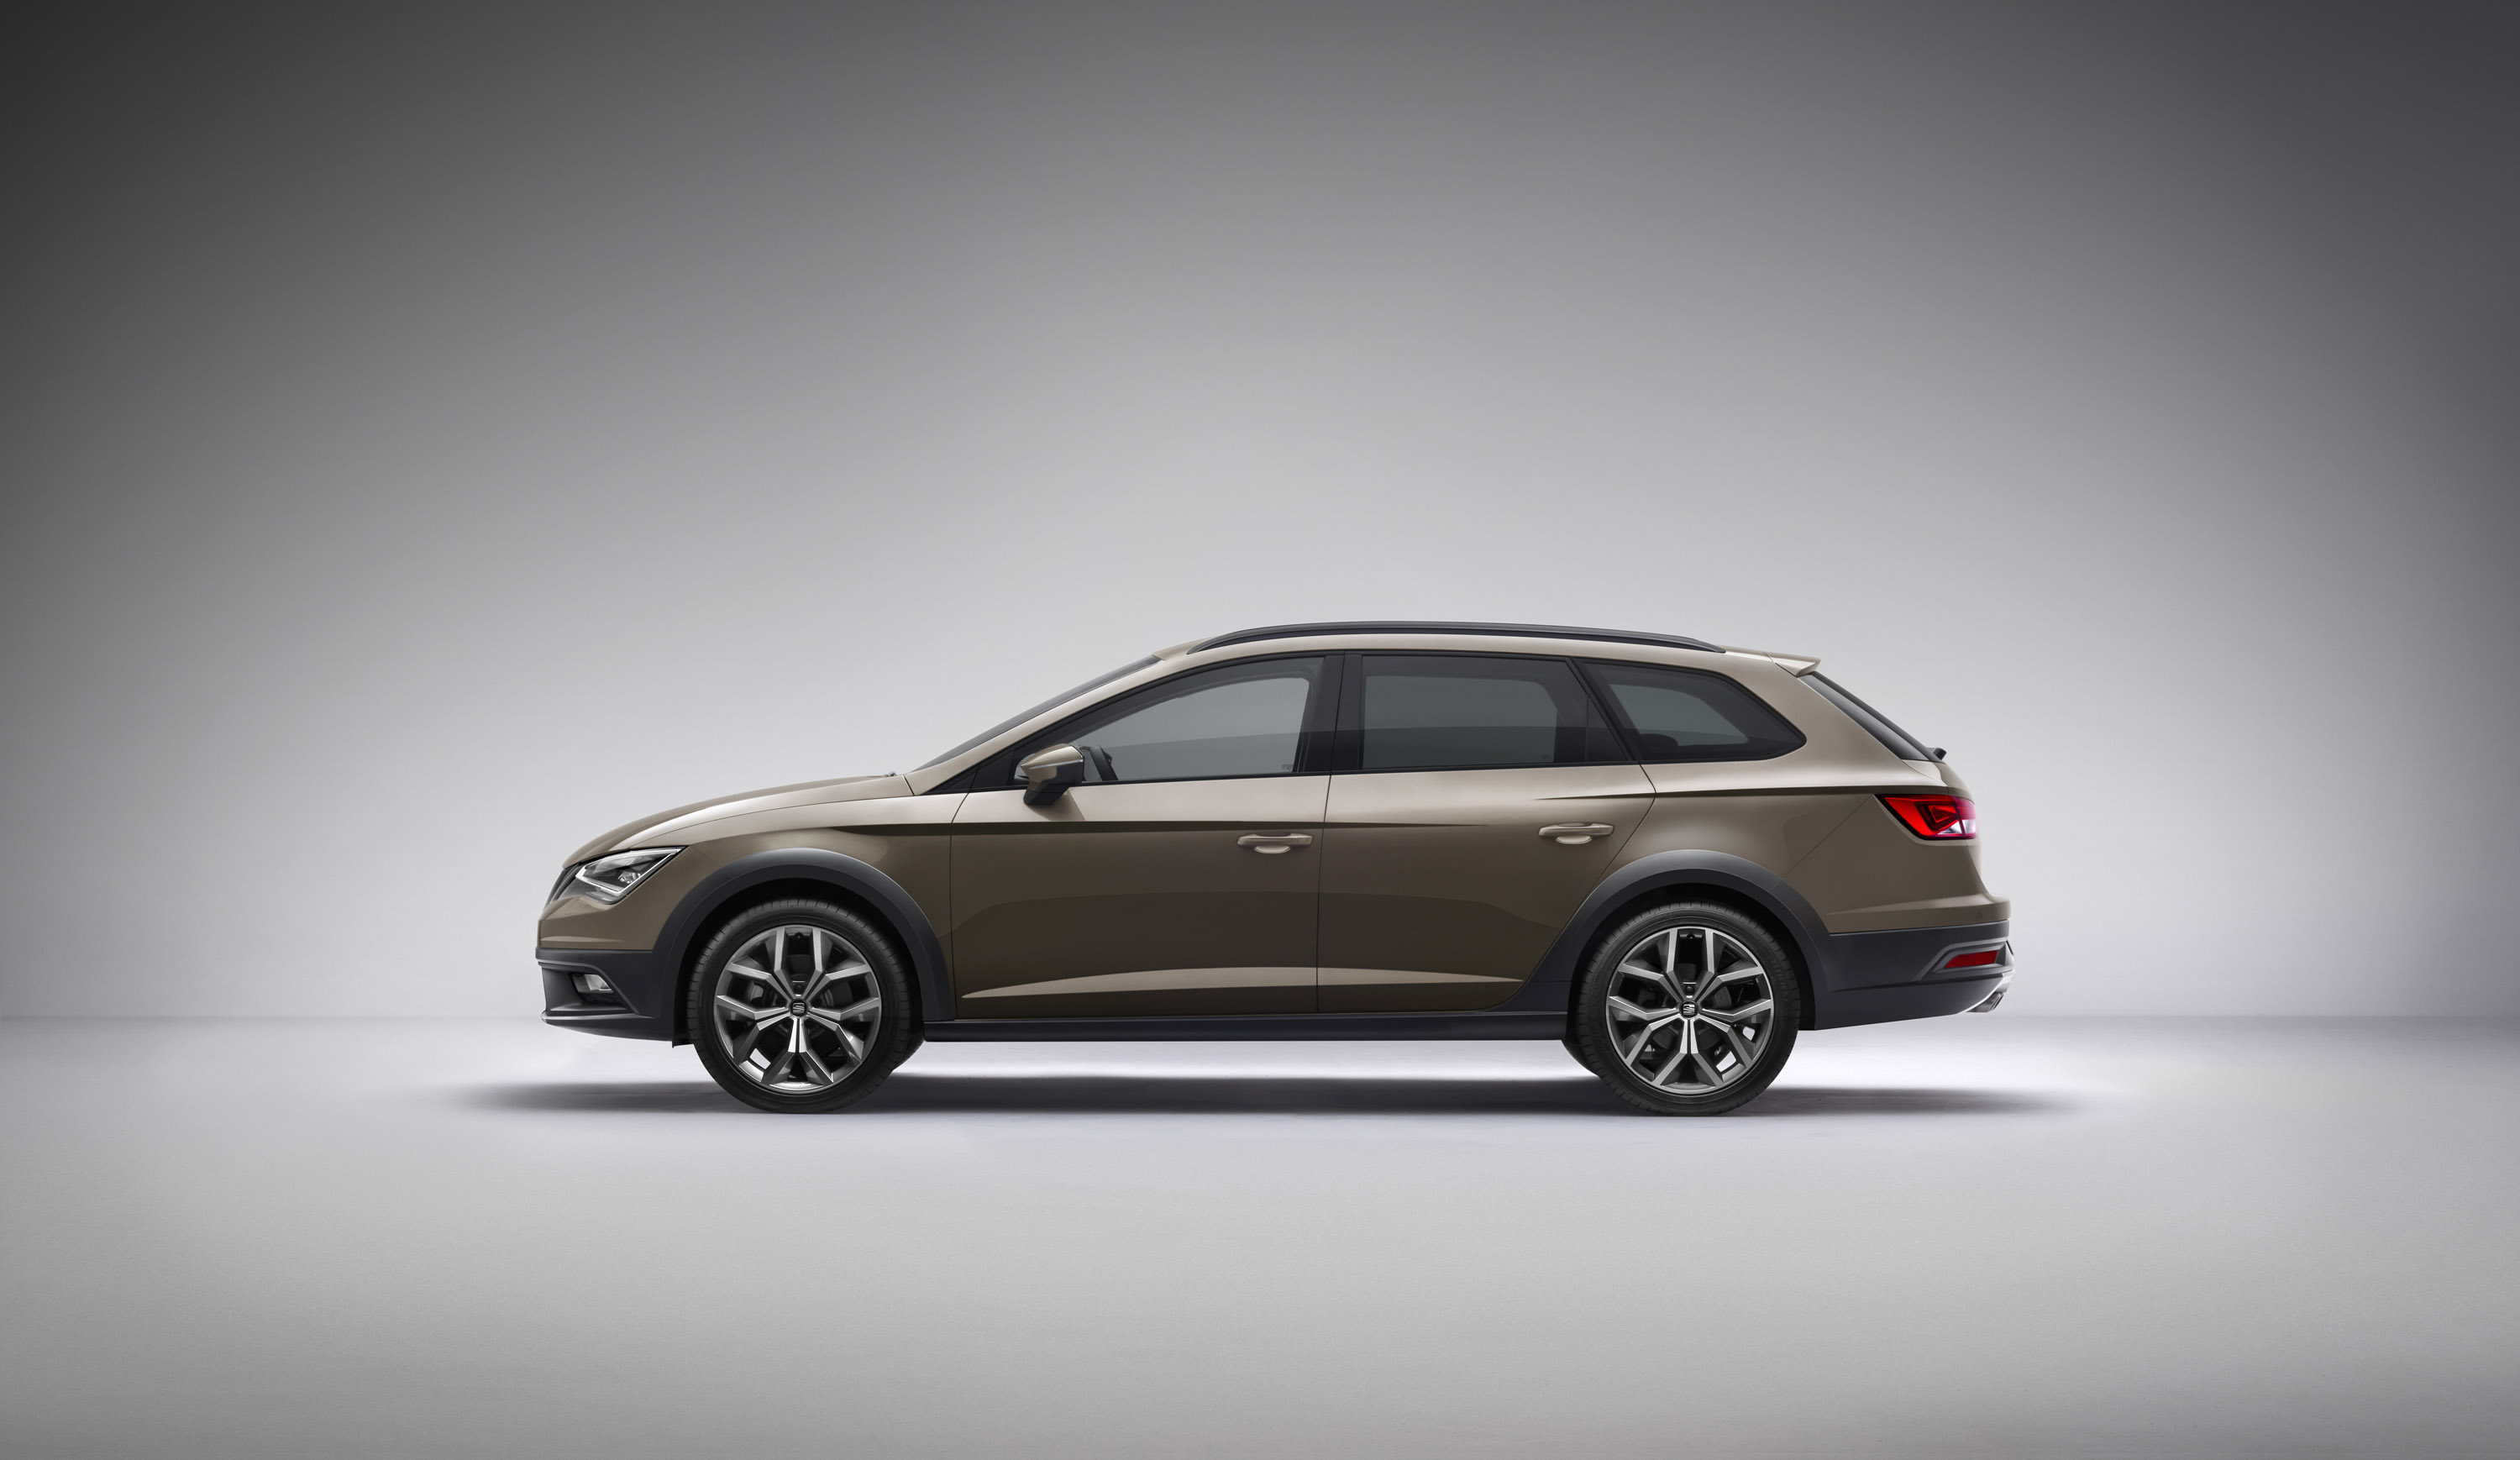 2014 seat leon x perience a rugged experience. Black Bedroom Furniture Sets. Home Design Ideas